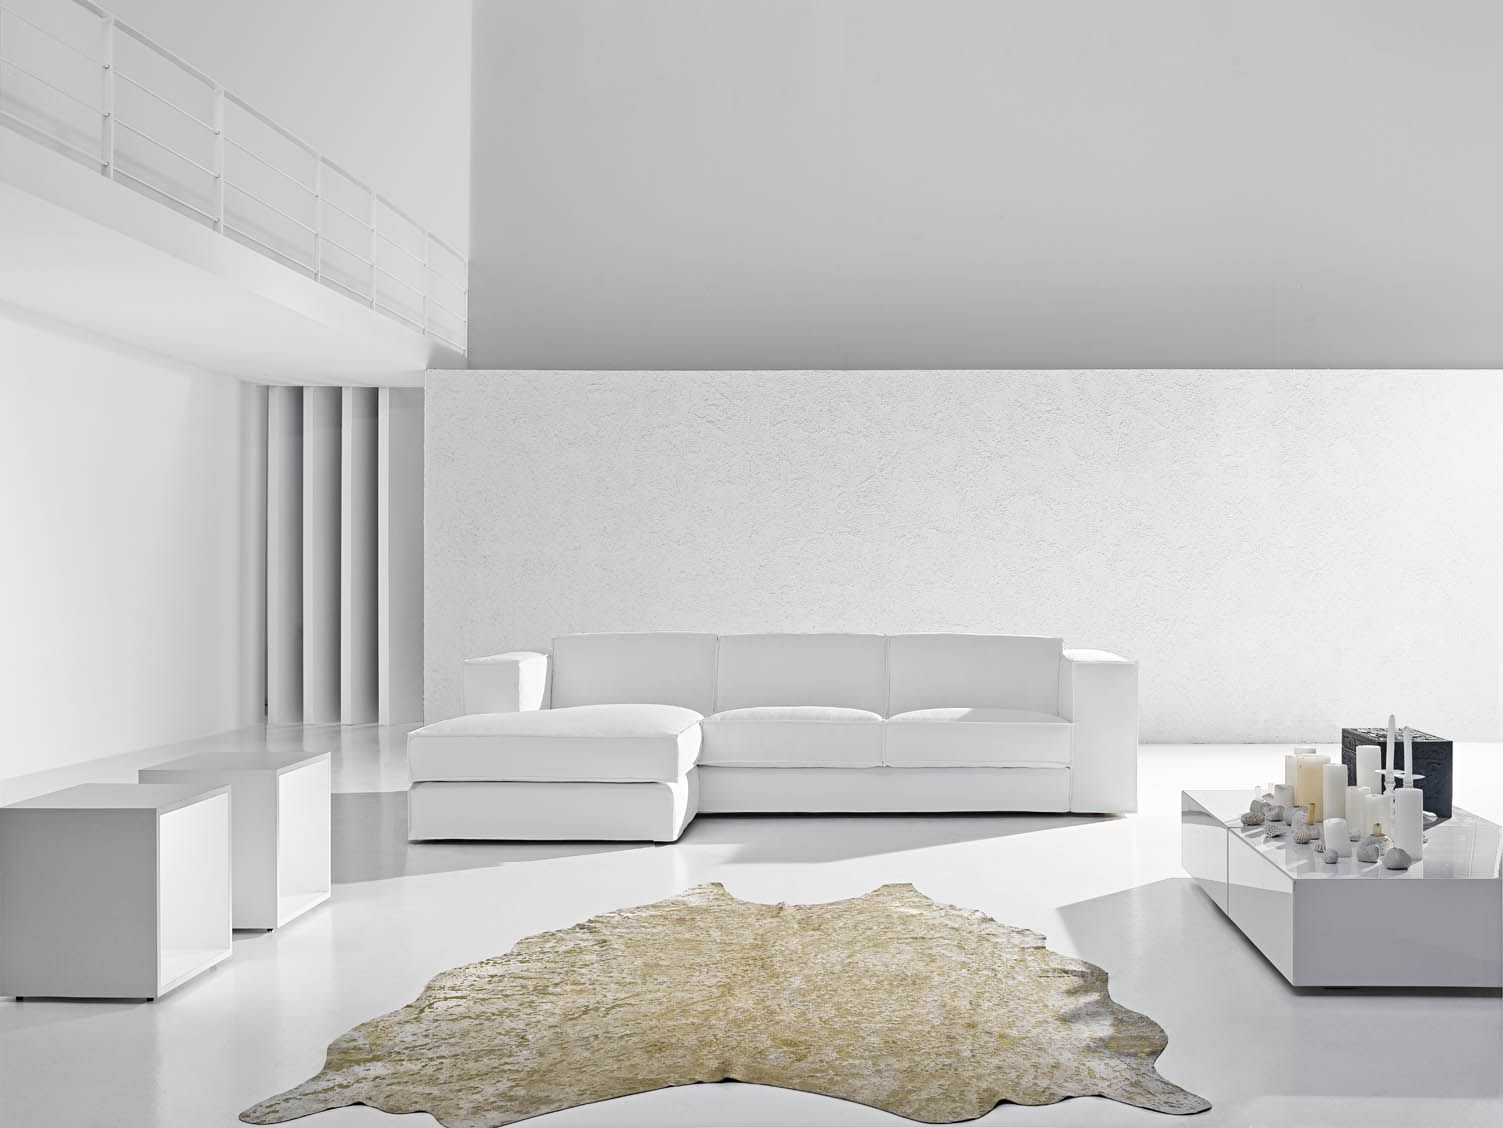 Divano Collection By Flores Design Nationwide Delivery Buy Now - Divano Pelle Bianco